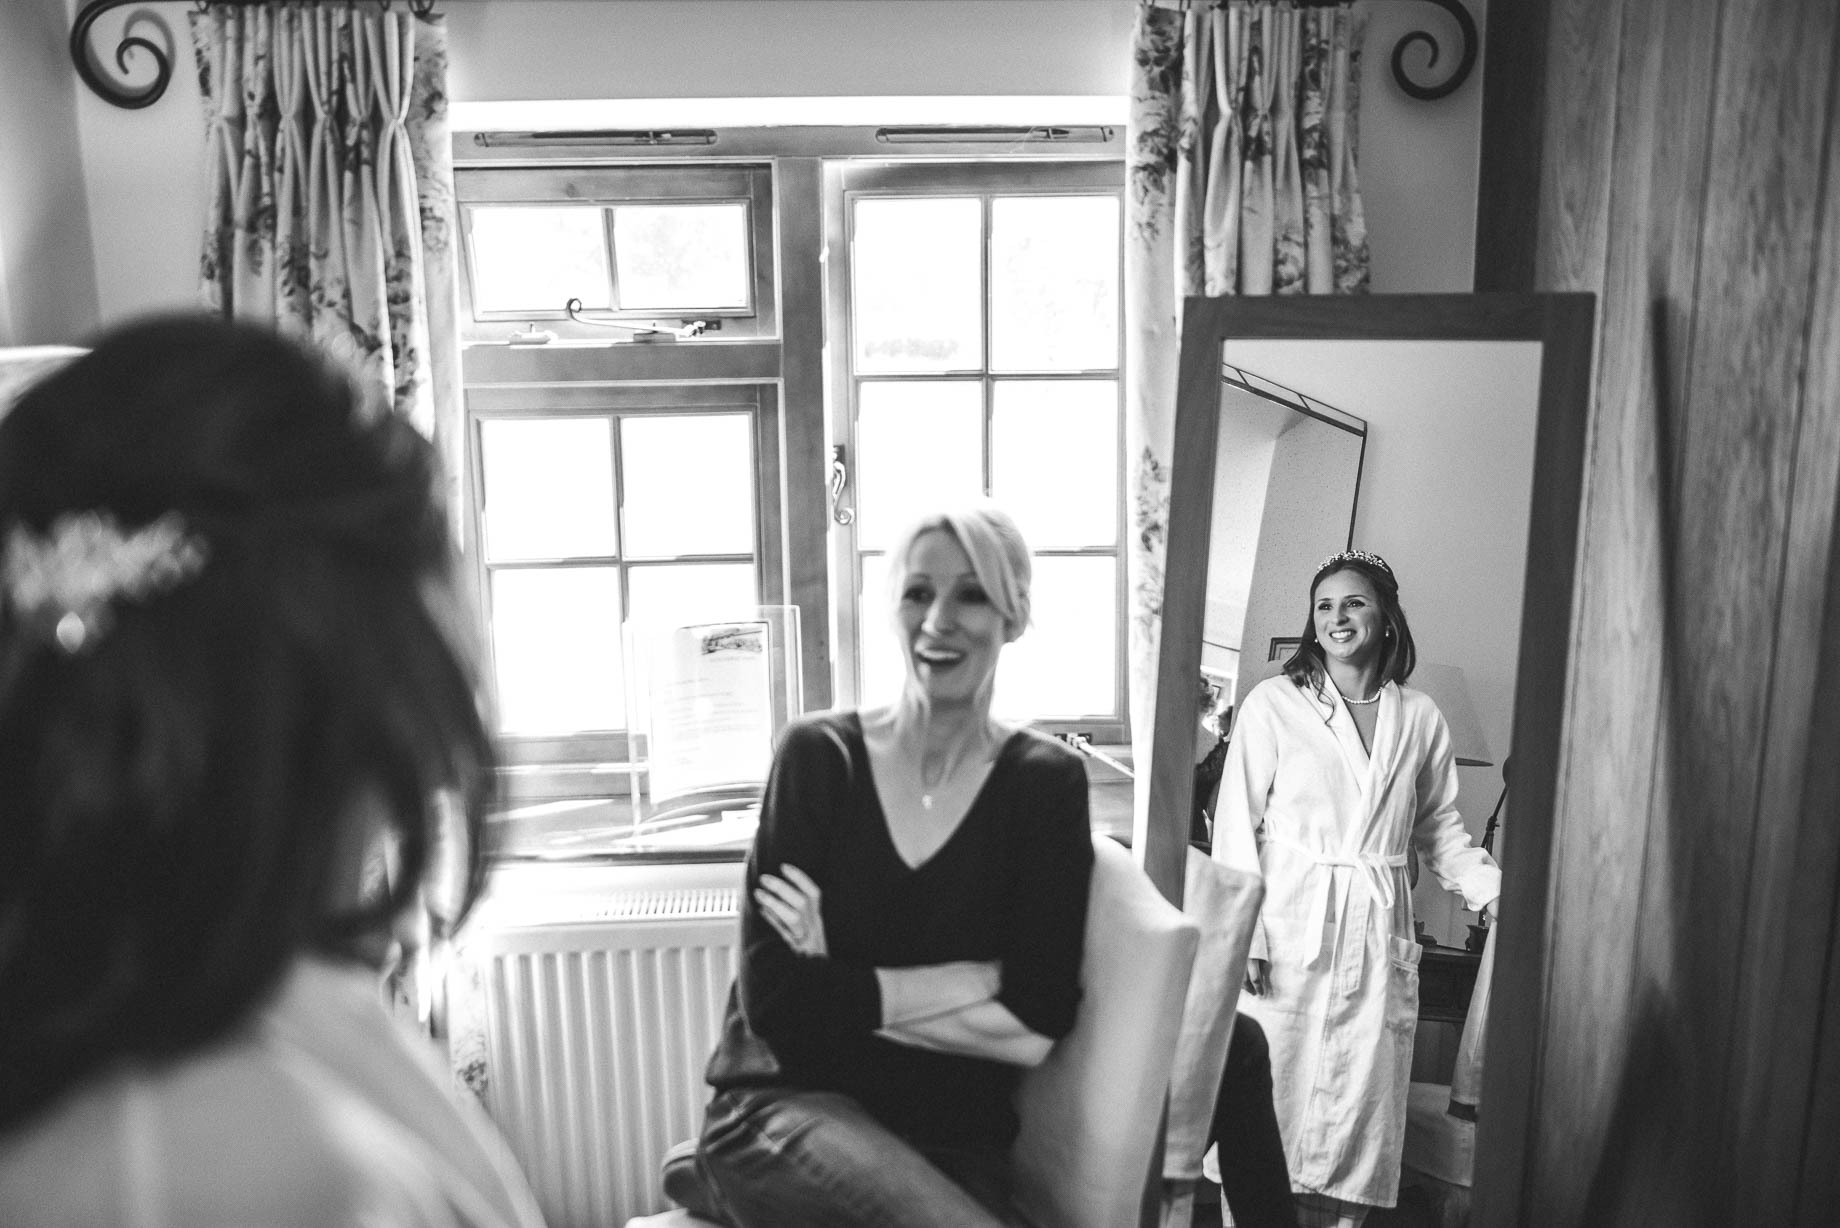 Gate Street Barn wedding photography - Guy Collier - Claire and Andy (39 of 192)